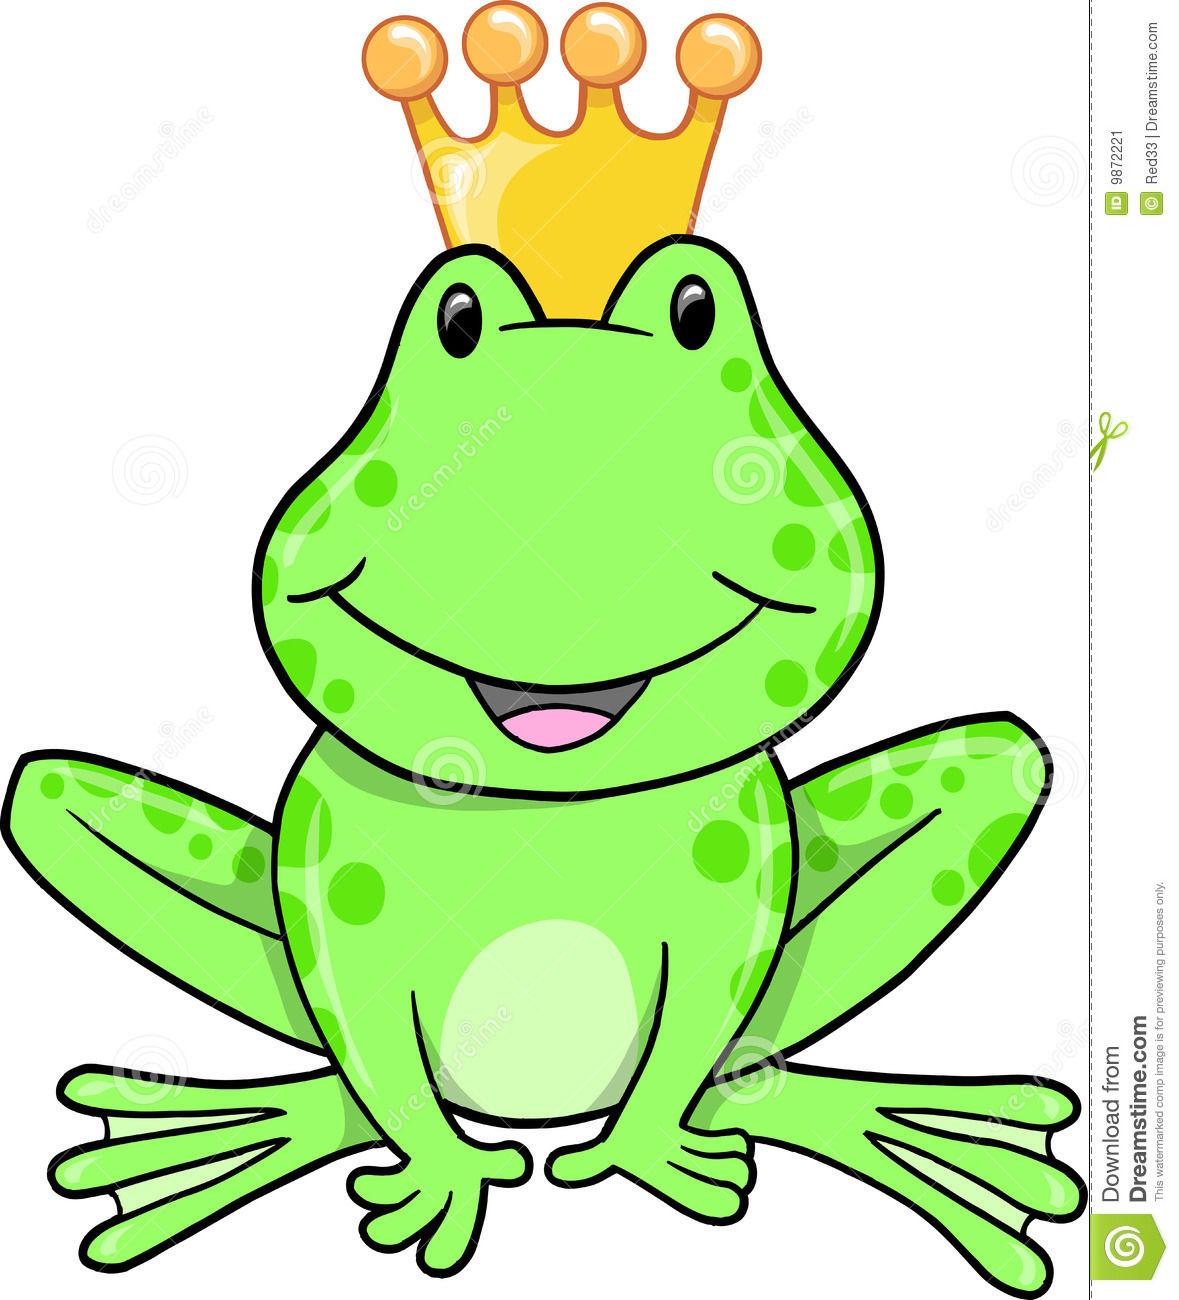 cute frog prince clipart clipart panda free clipart images rh clipartpanda com Prince and Princess Clip Art of Cartoon Frogs Prince and Princess Clip Art of Cartoon Frogs